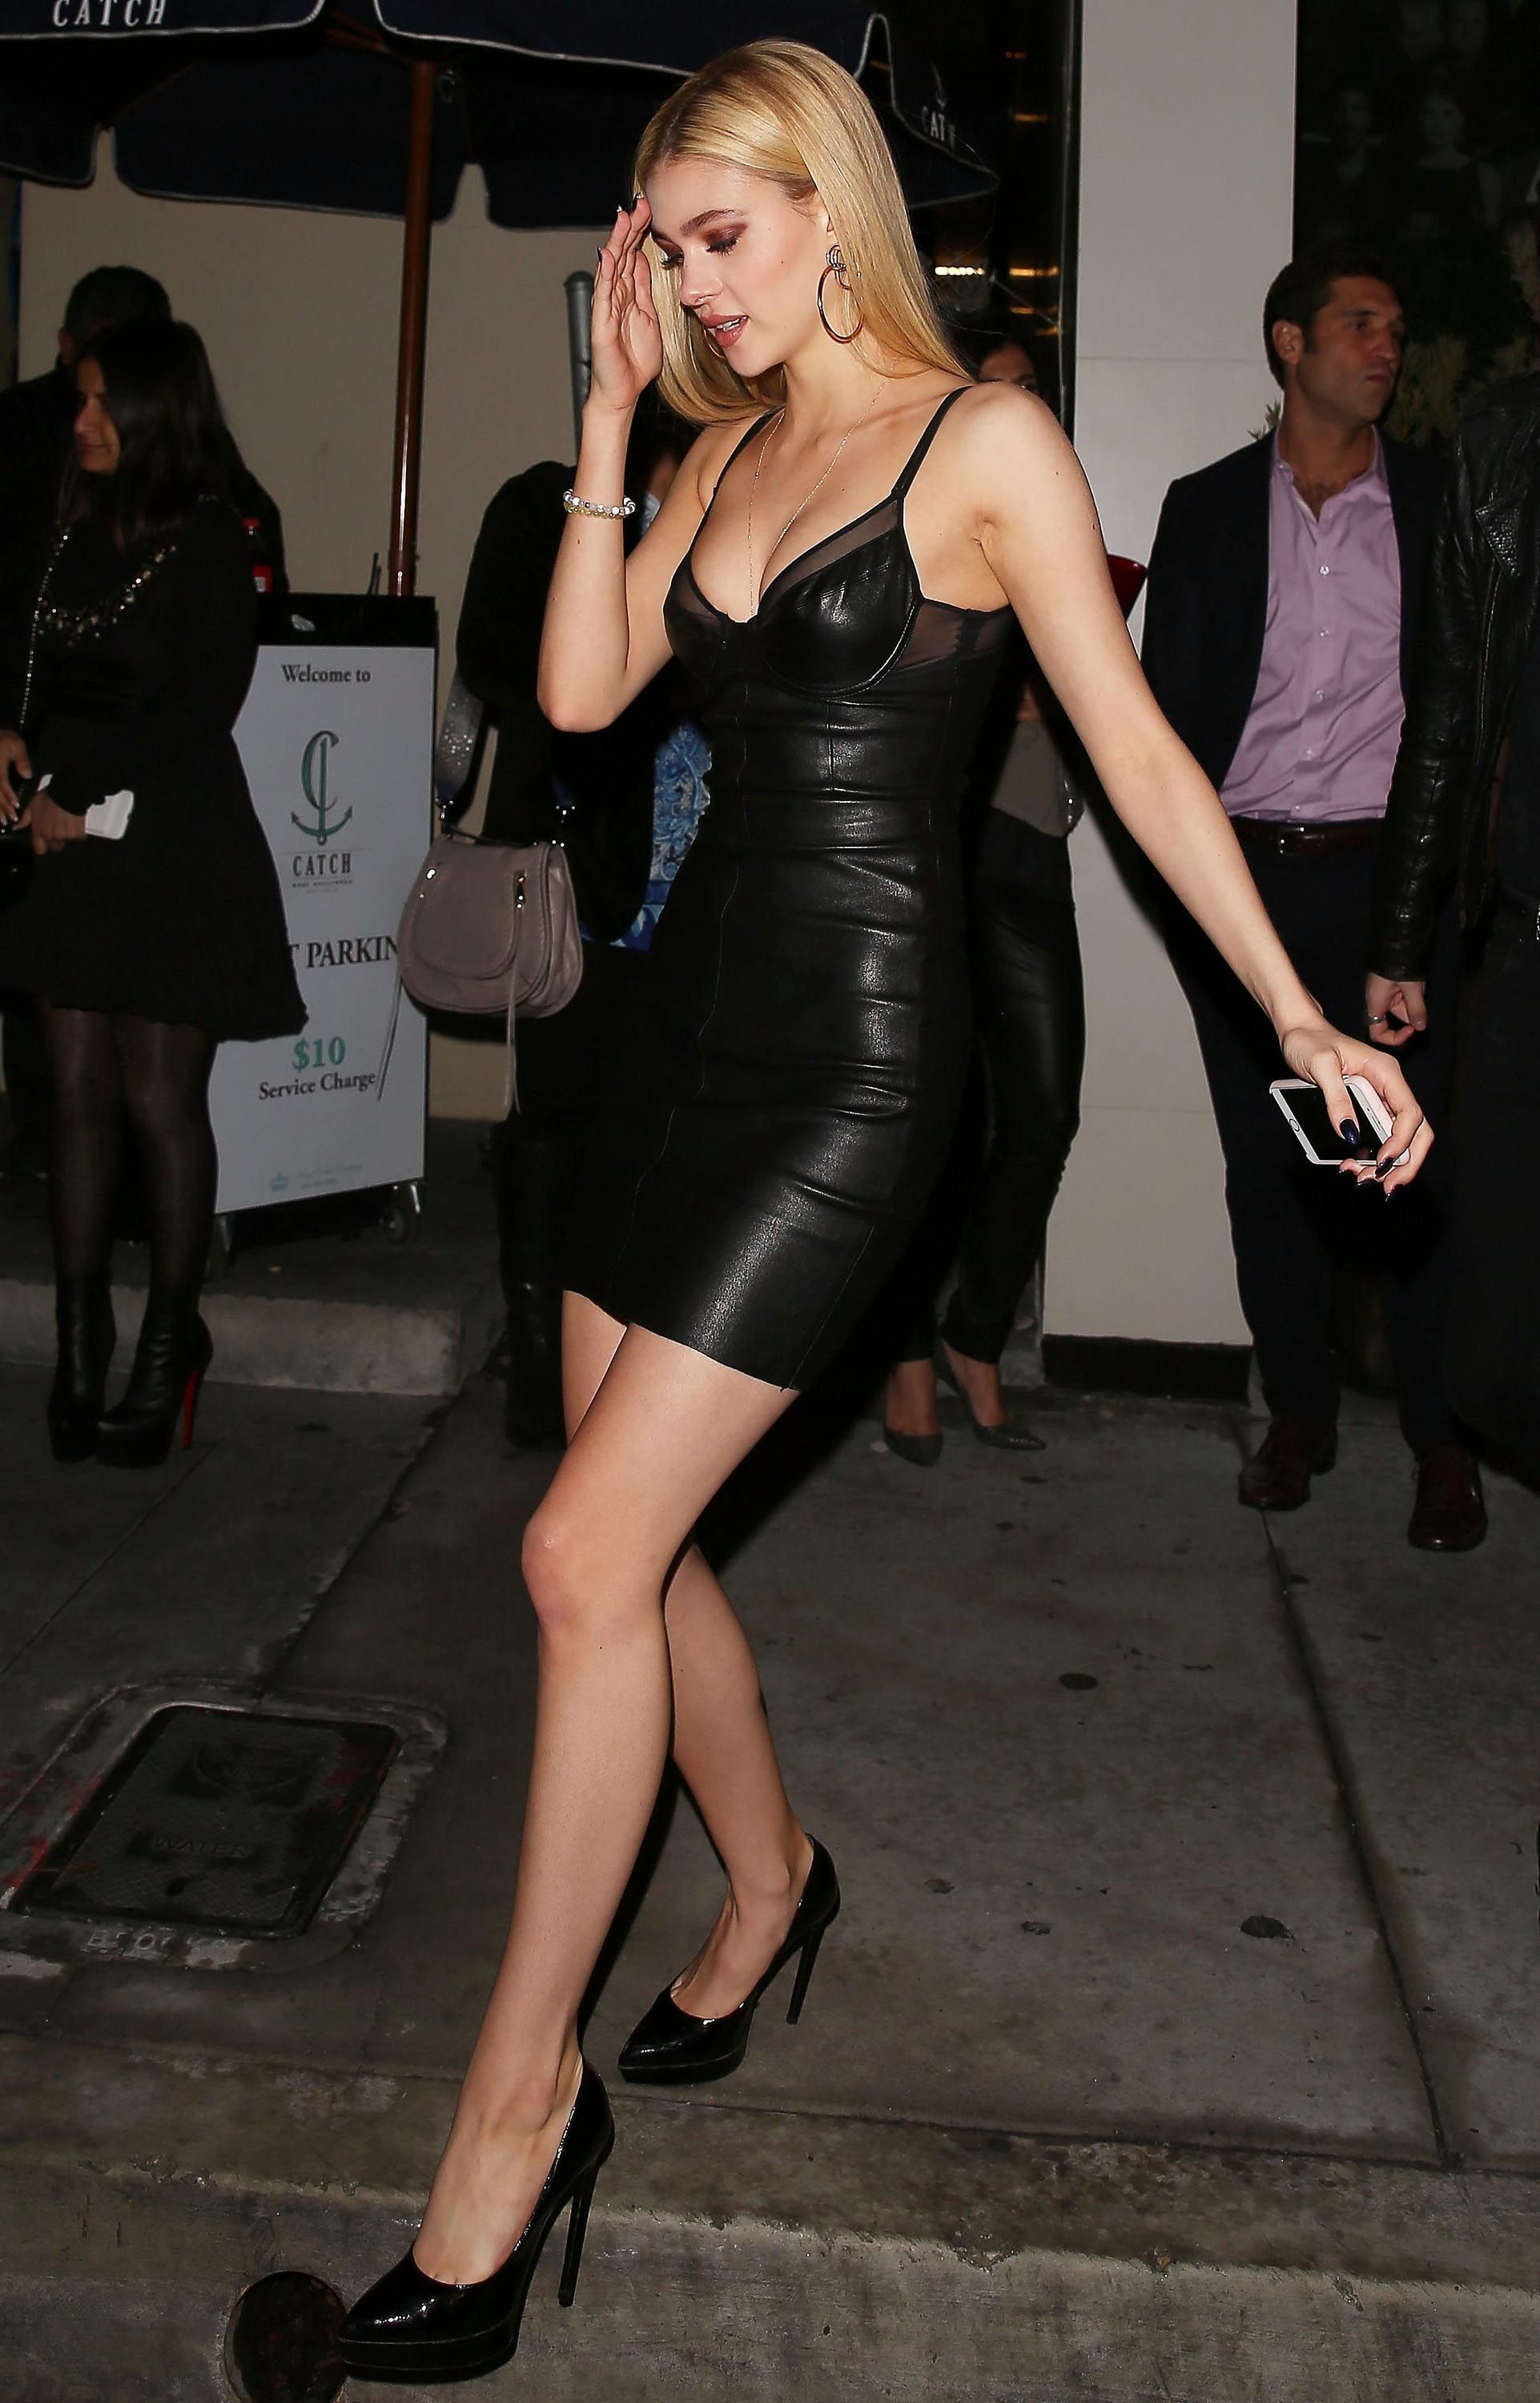 1aefda377 Nicola Peltz enjoyed a night out with friends at Catch LA